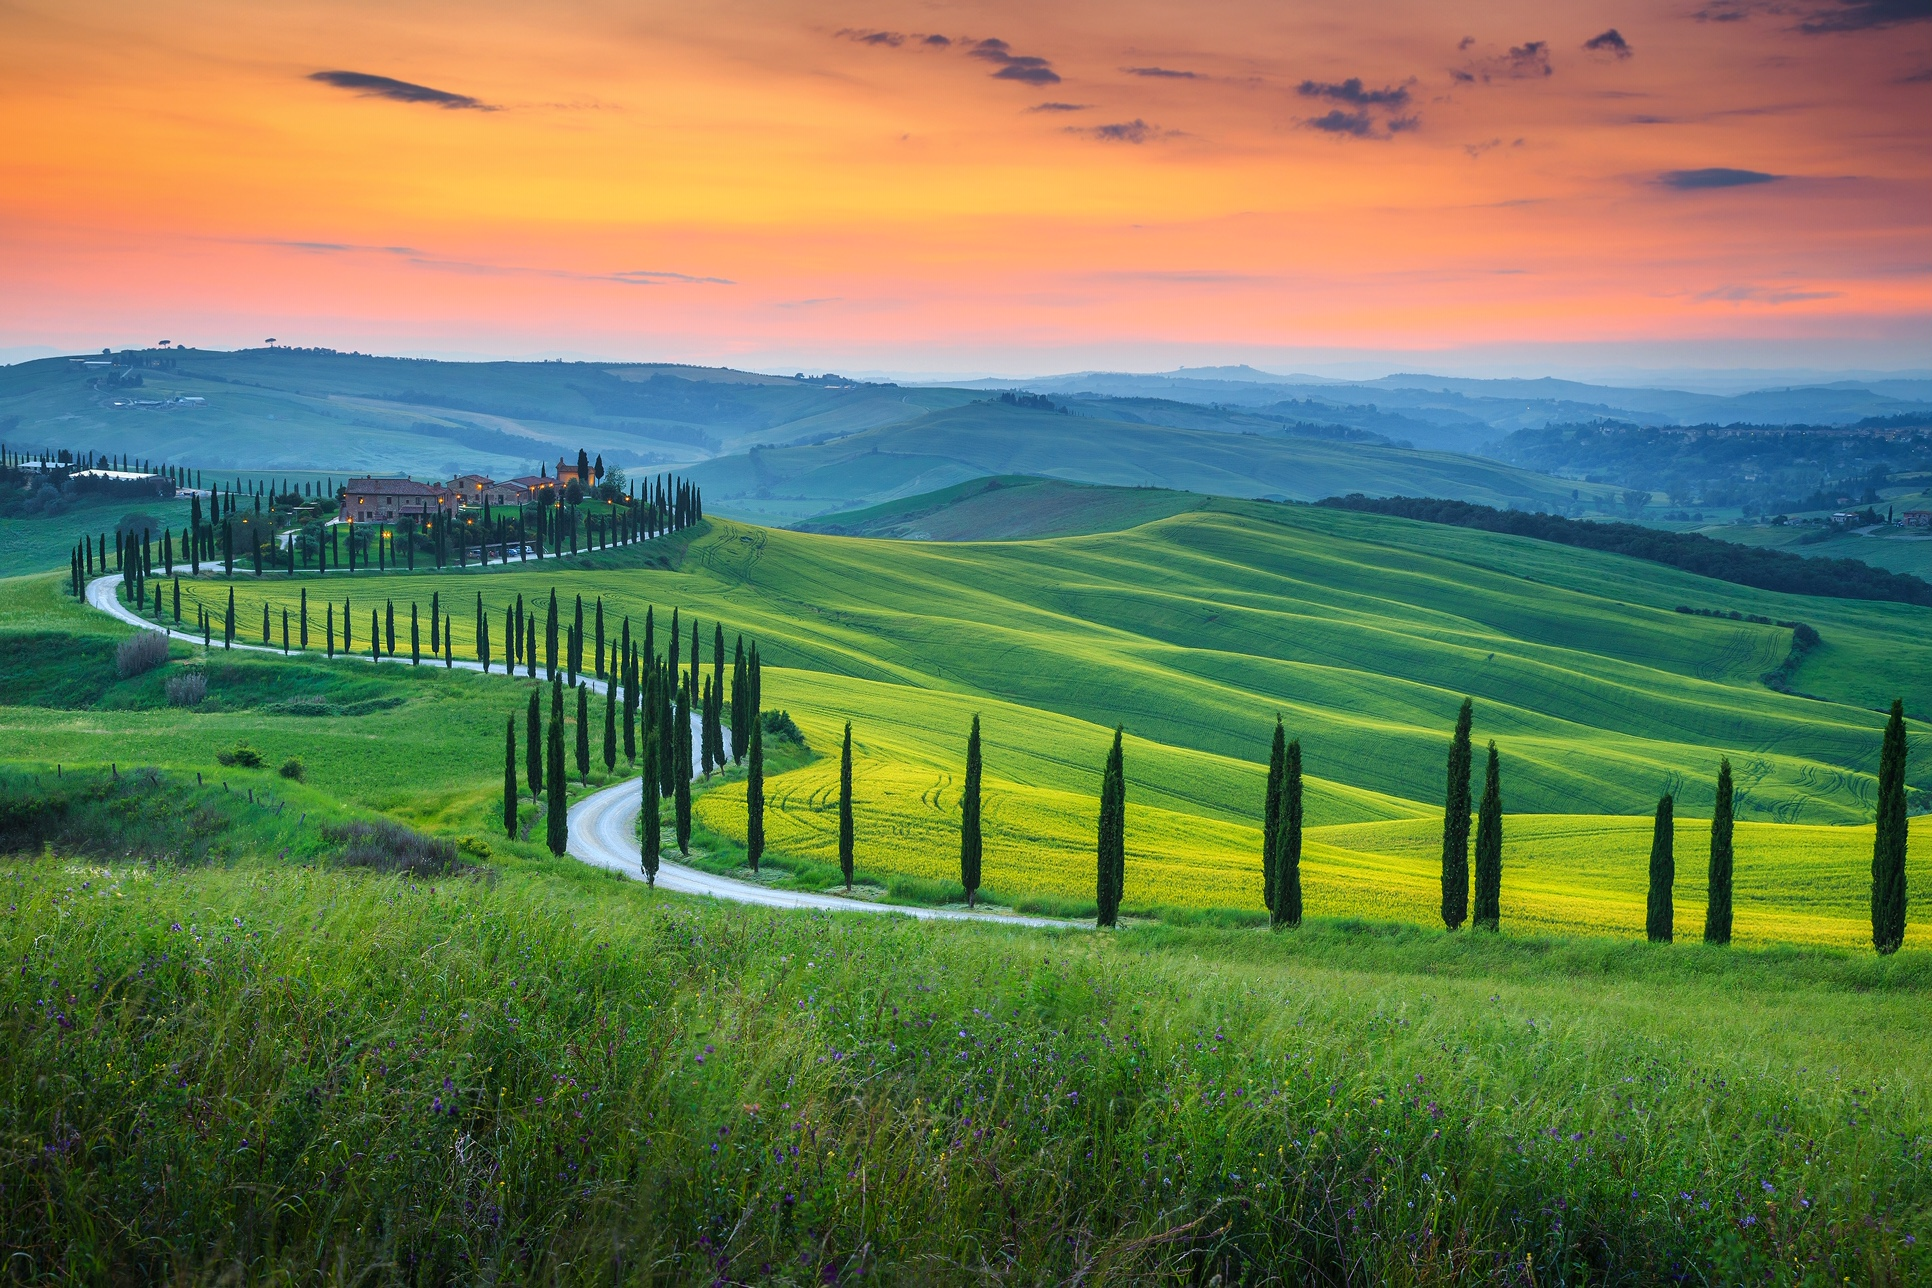 LTL Tours guarantees that your holiday in Italy will be a unique and enchanting experience